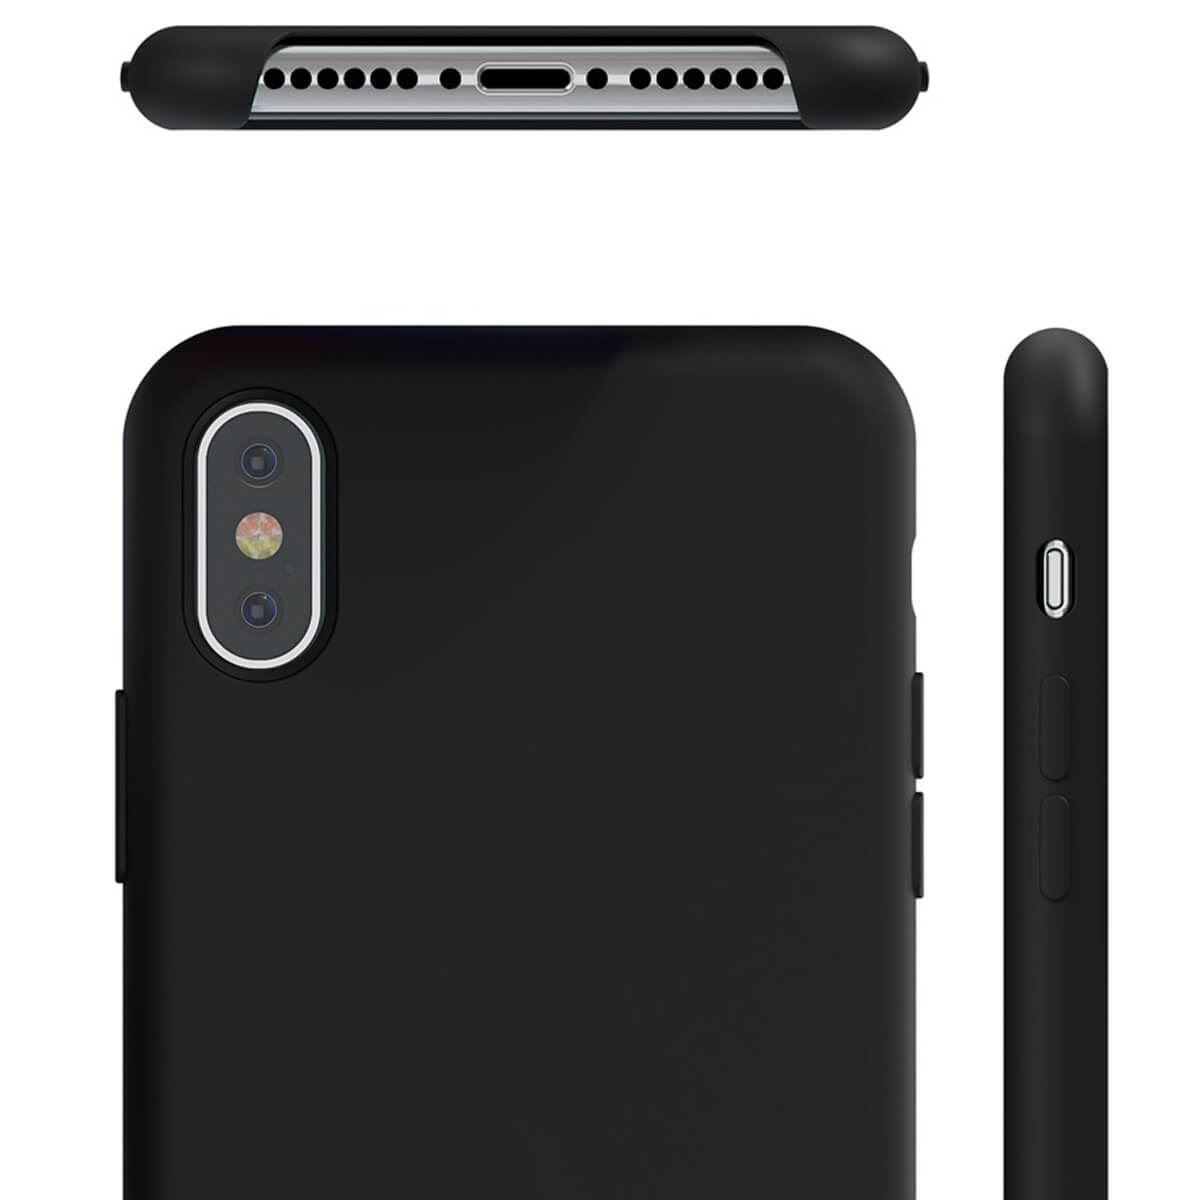 Liquid-Silicone-Phone-Case-For-Apple-iPhone-Soft-Shockproof-Matte-Back-Cover thumbnail 11